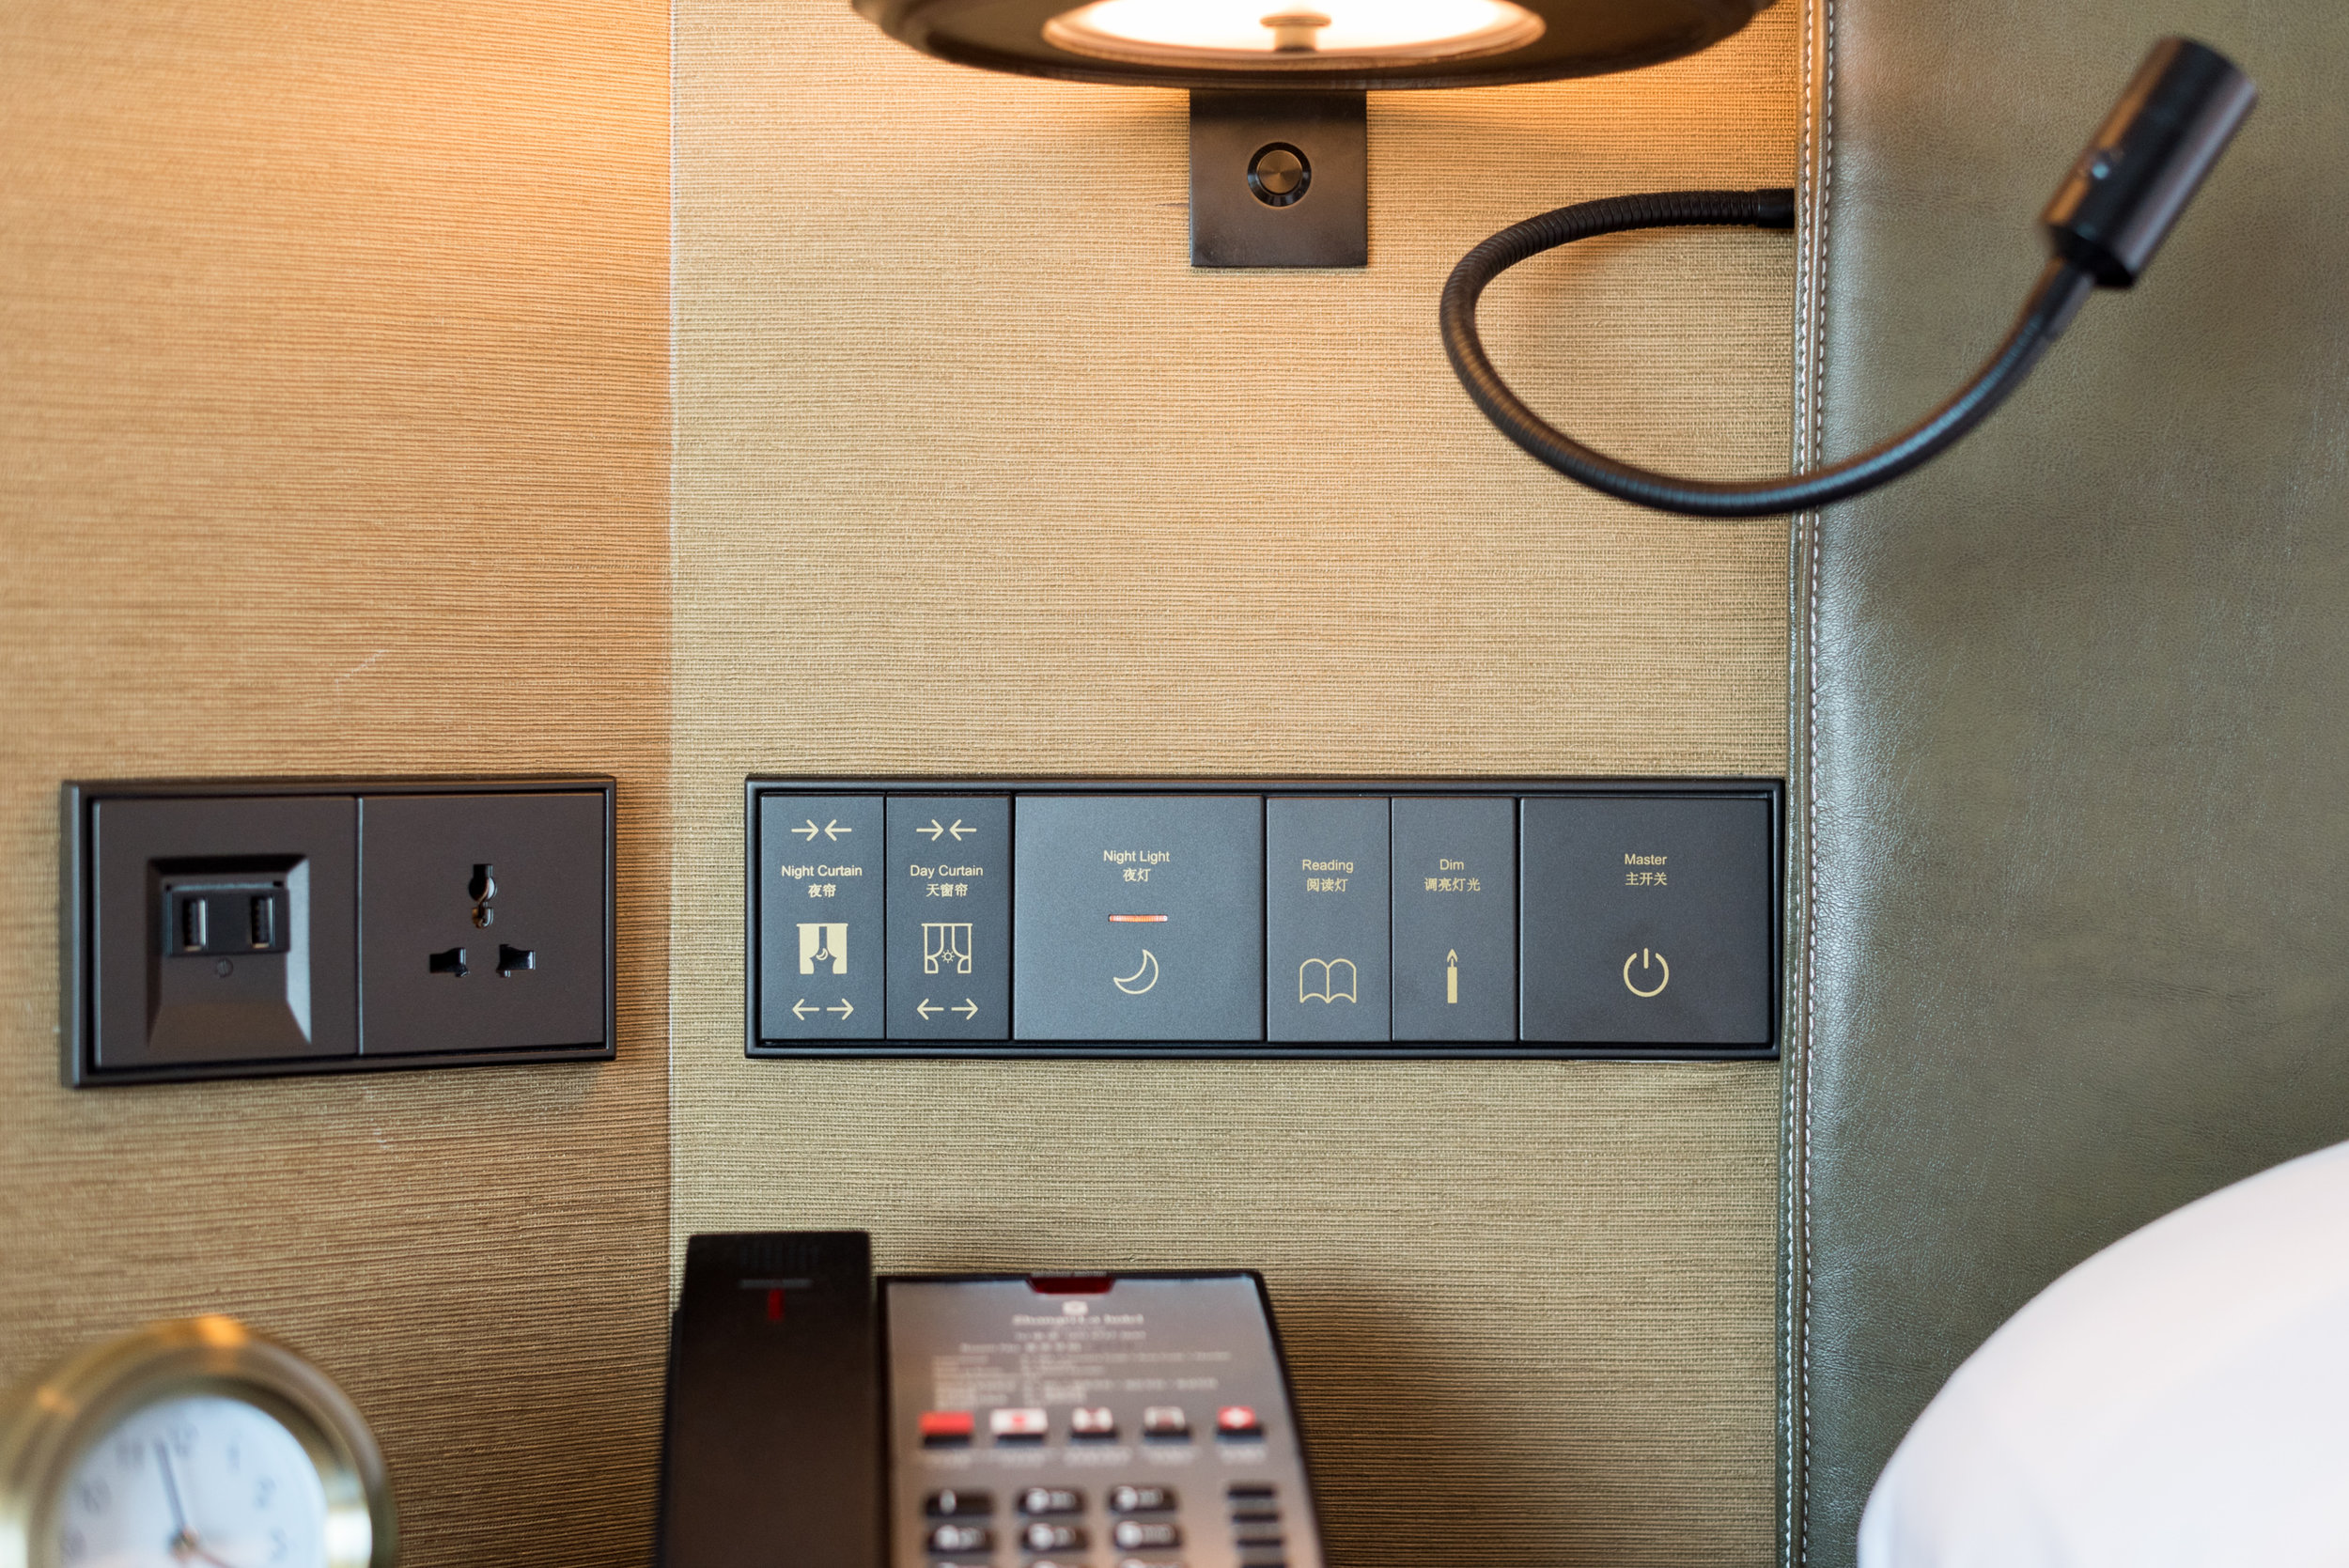 Bedside Controls and USB Charging Ports  Tower Wing Horizon Club Deluxe Room - Shangri-La Hotel, Singapore